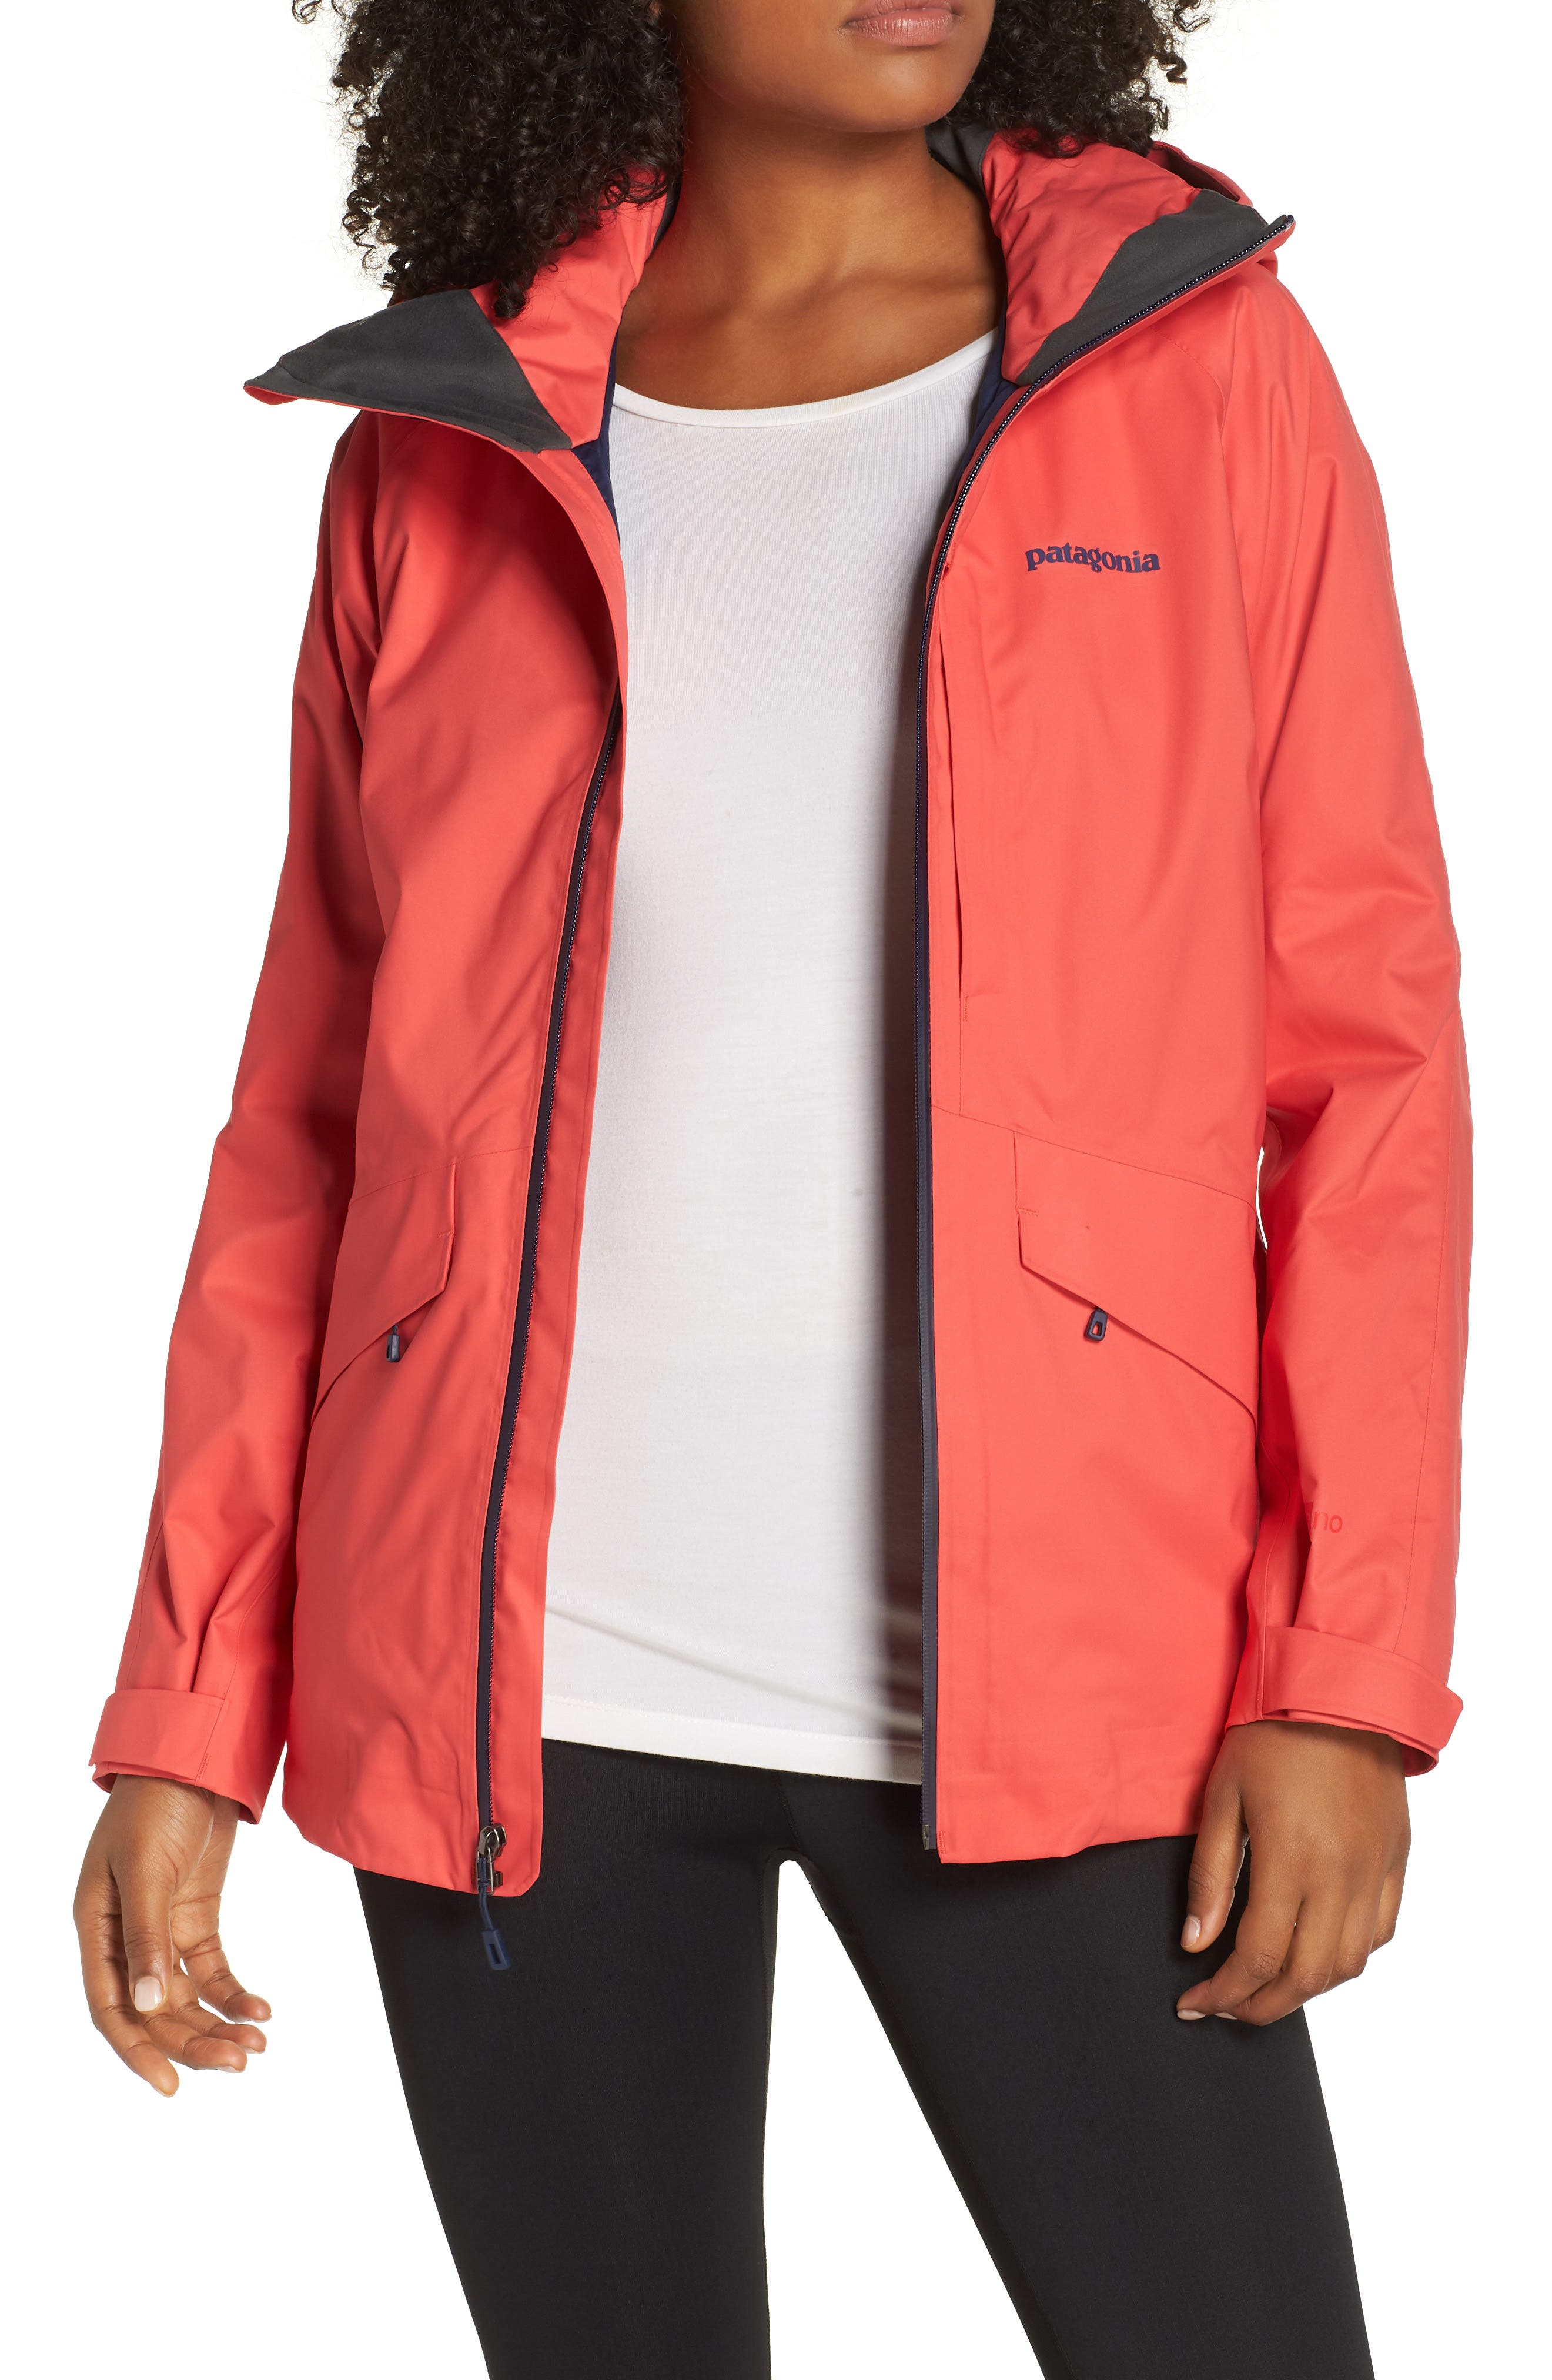 PATAGONIA Snowbelle Insulated Ski Jacket, Main, color, 601